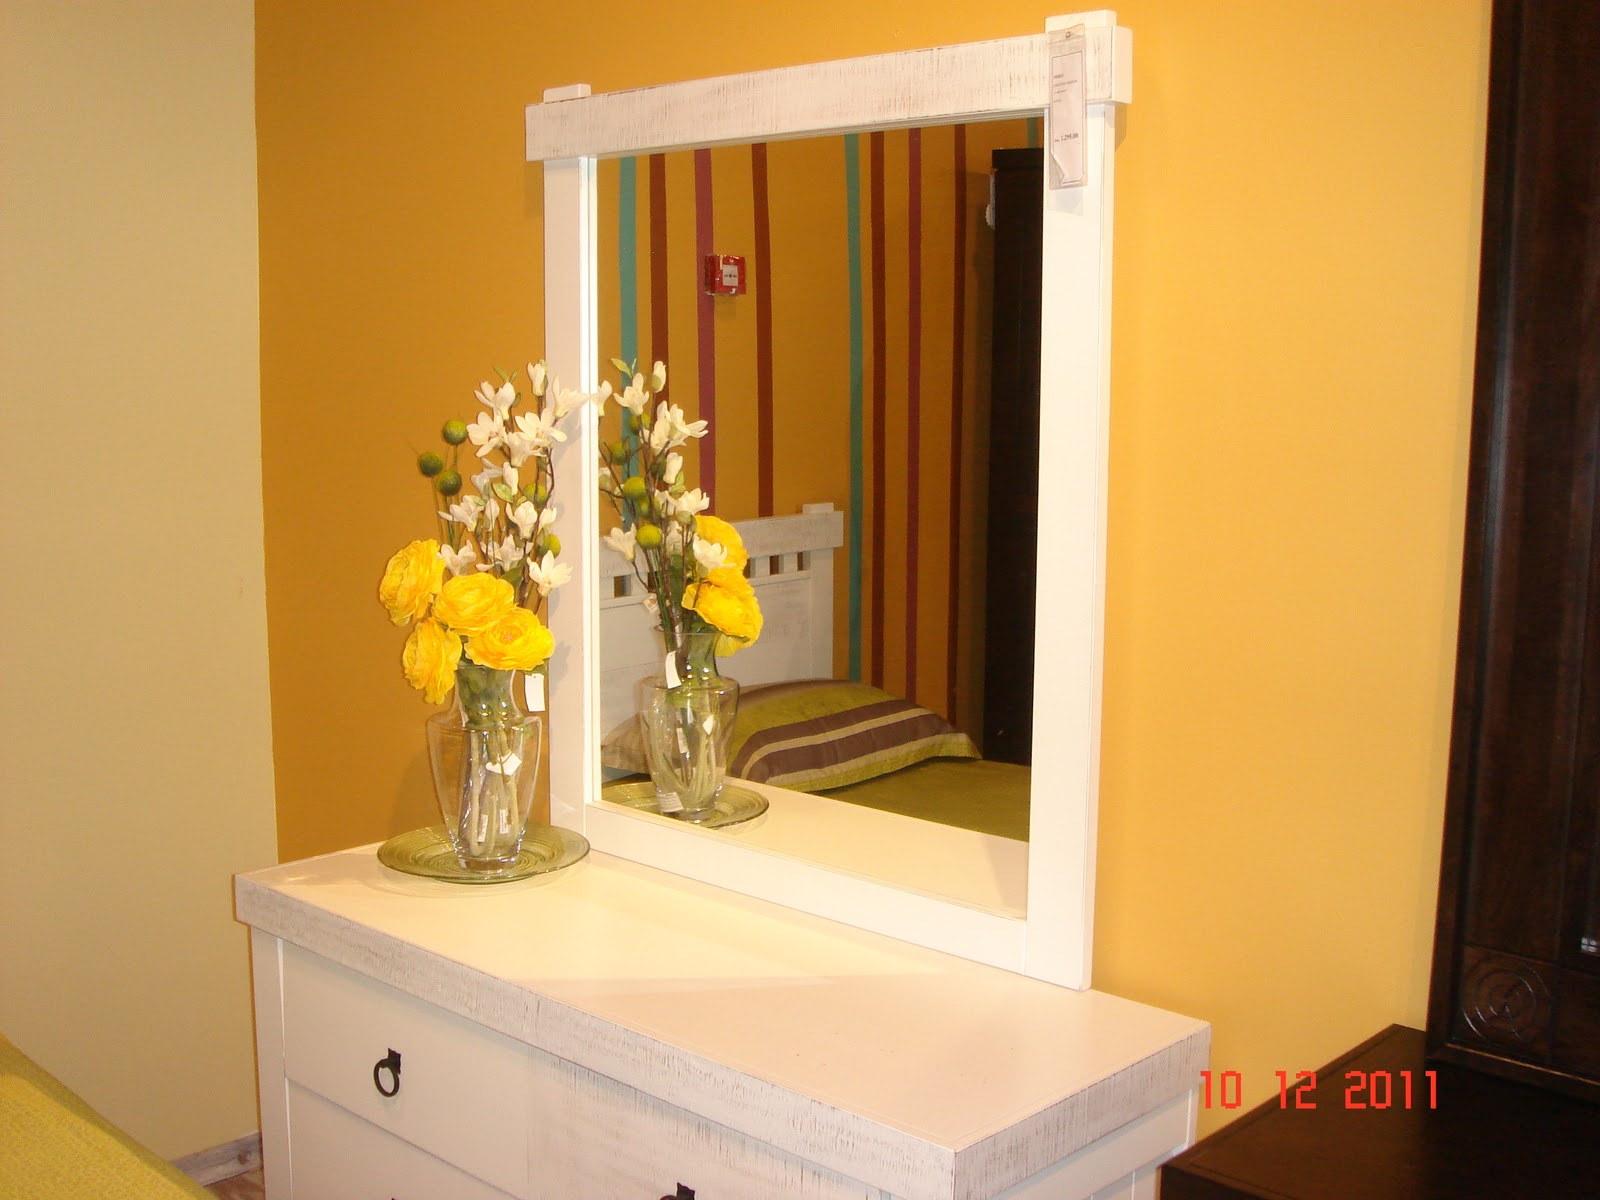 Wall mounted dressing table designs for bedroom - Wall Mounted Dressing Table Designs For Bedroom 5